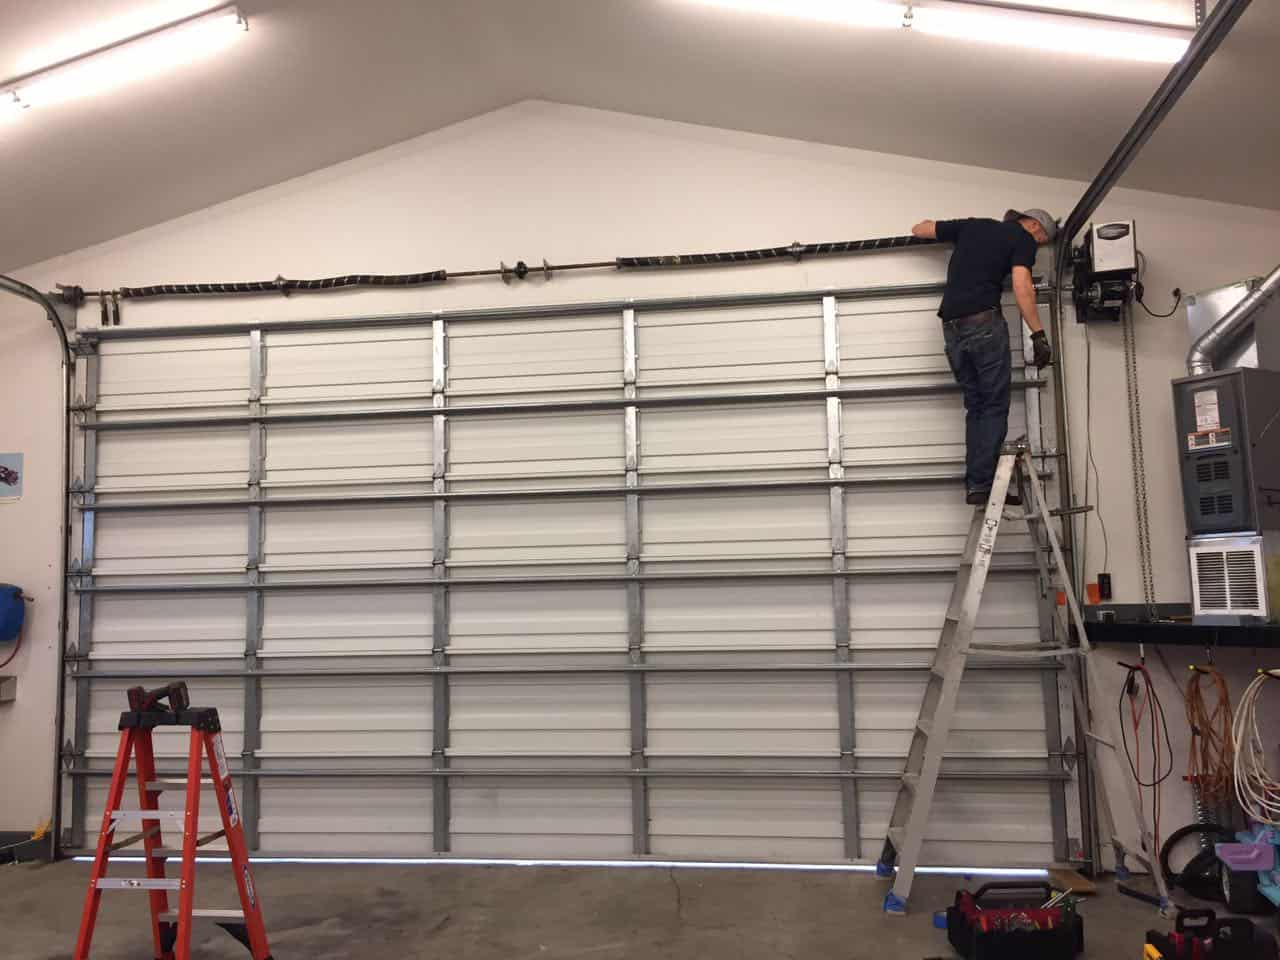 Commercial garage door repair in sumner wa by elite tech services llc commercial garage door repair in sumner wa3 rubansaba